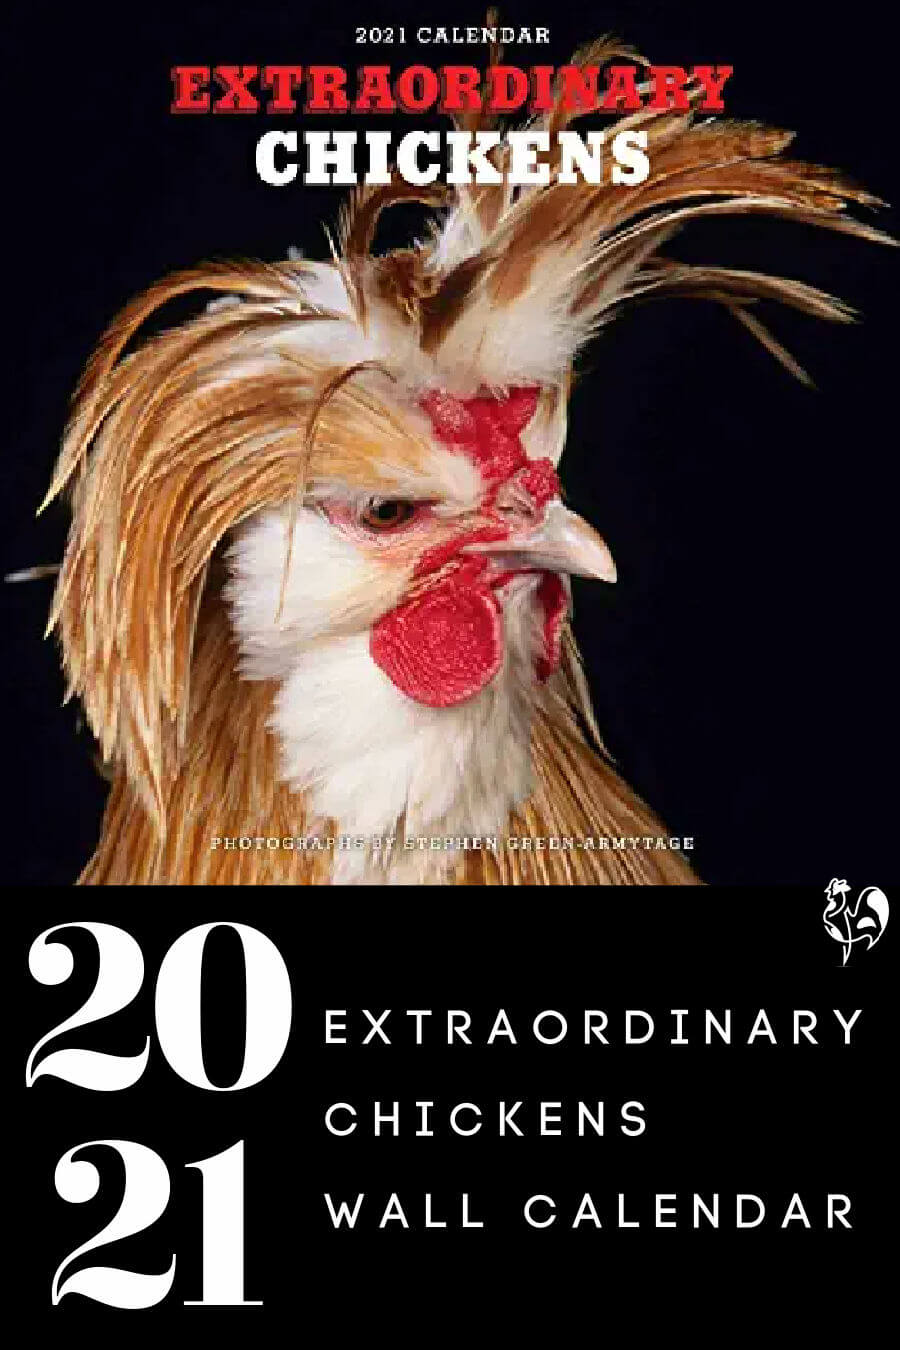 An extraordinary chickens calendar - Pin for later.